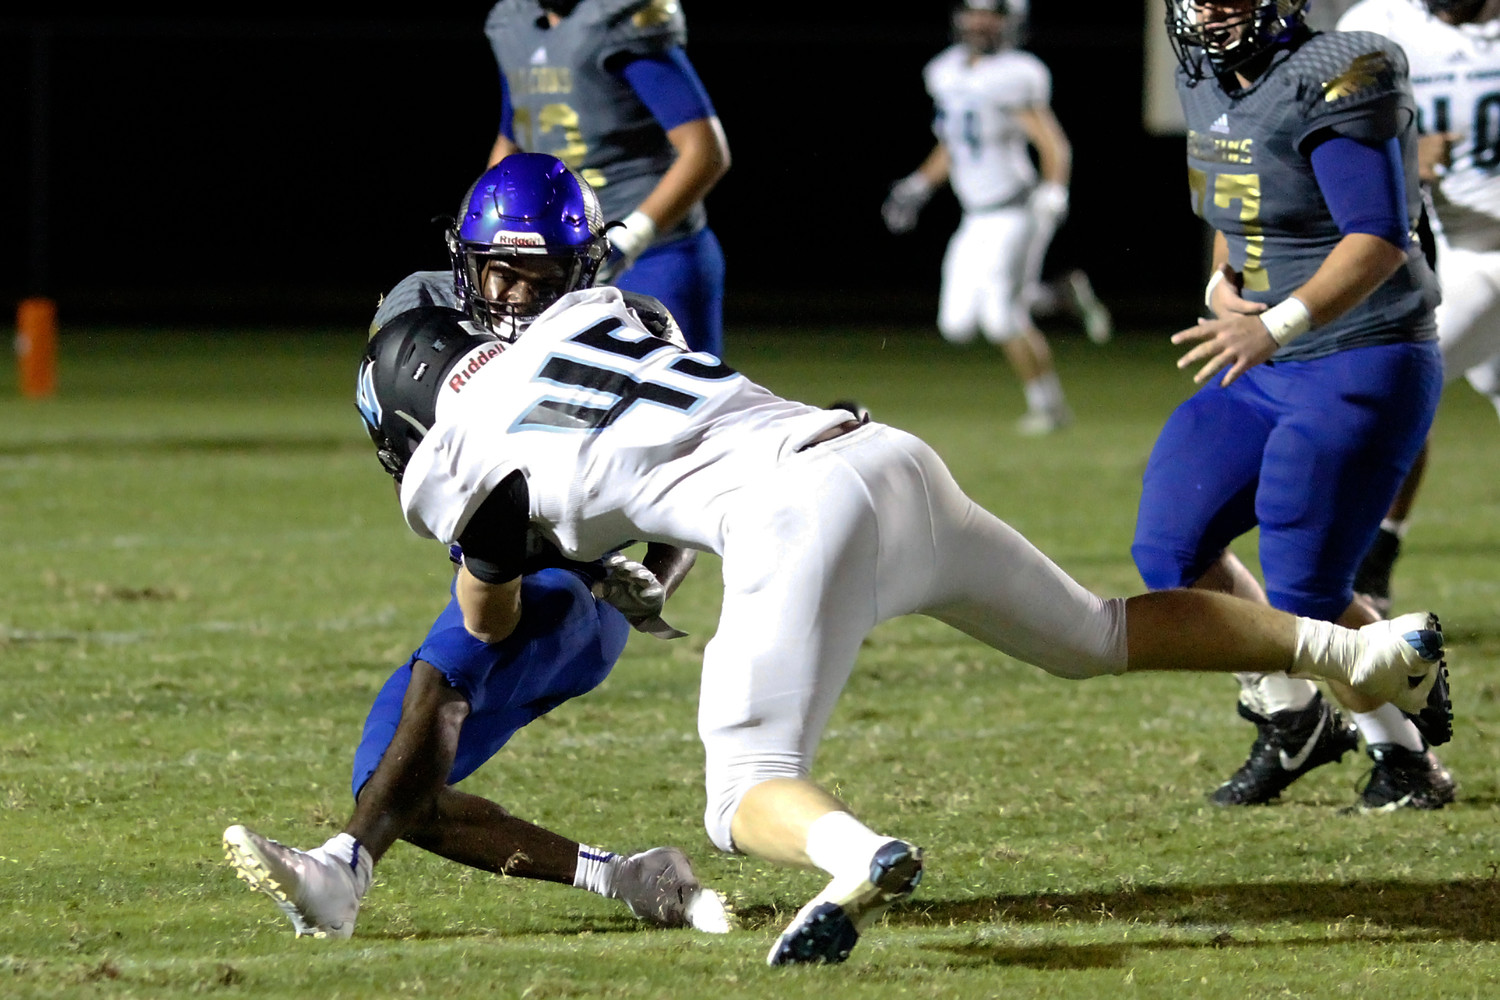 CD James of Ponte Vedra fights off a stiff arm to the face.